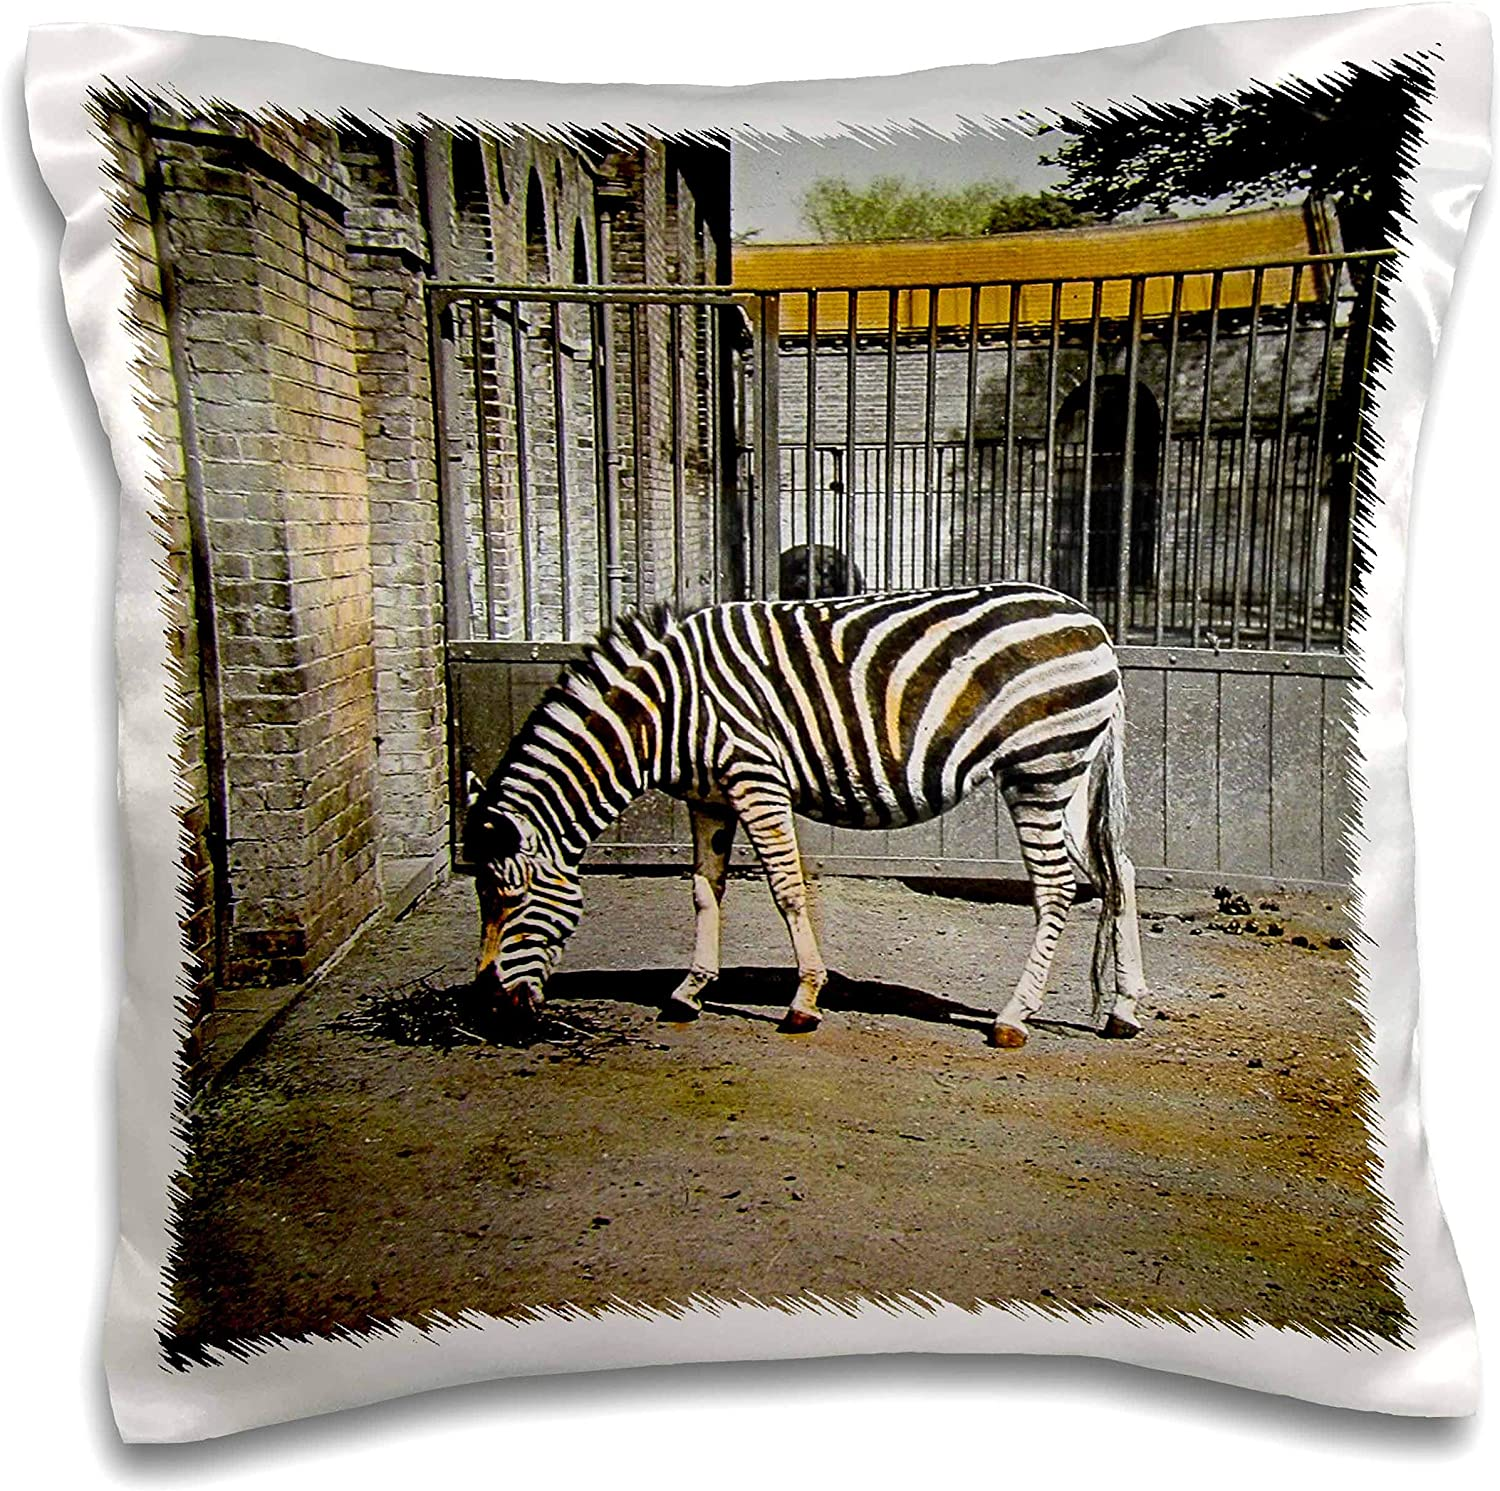 3dRose Scenes from the Past - Magic Lantern - Vintage Early 1900s Zebra in the Zoo Victorian Era Photo Wildlife - 16x16 inch Pillow Case (pc_301302_1)